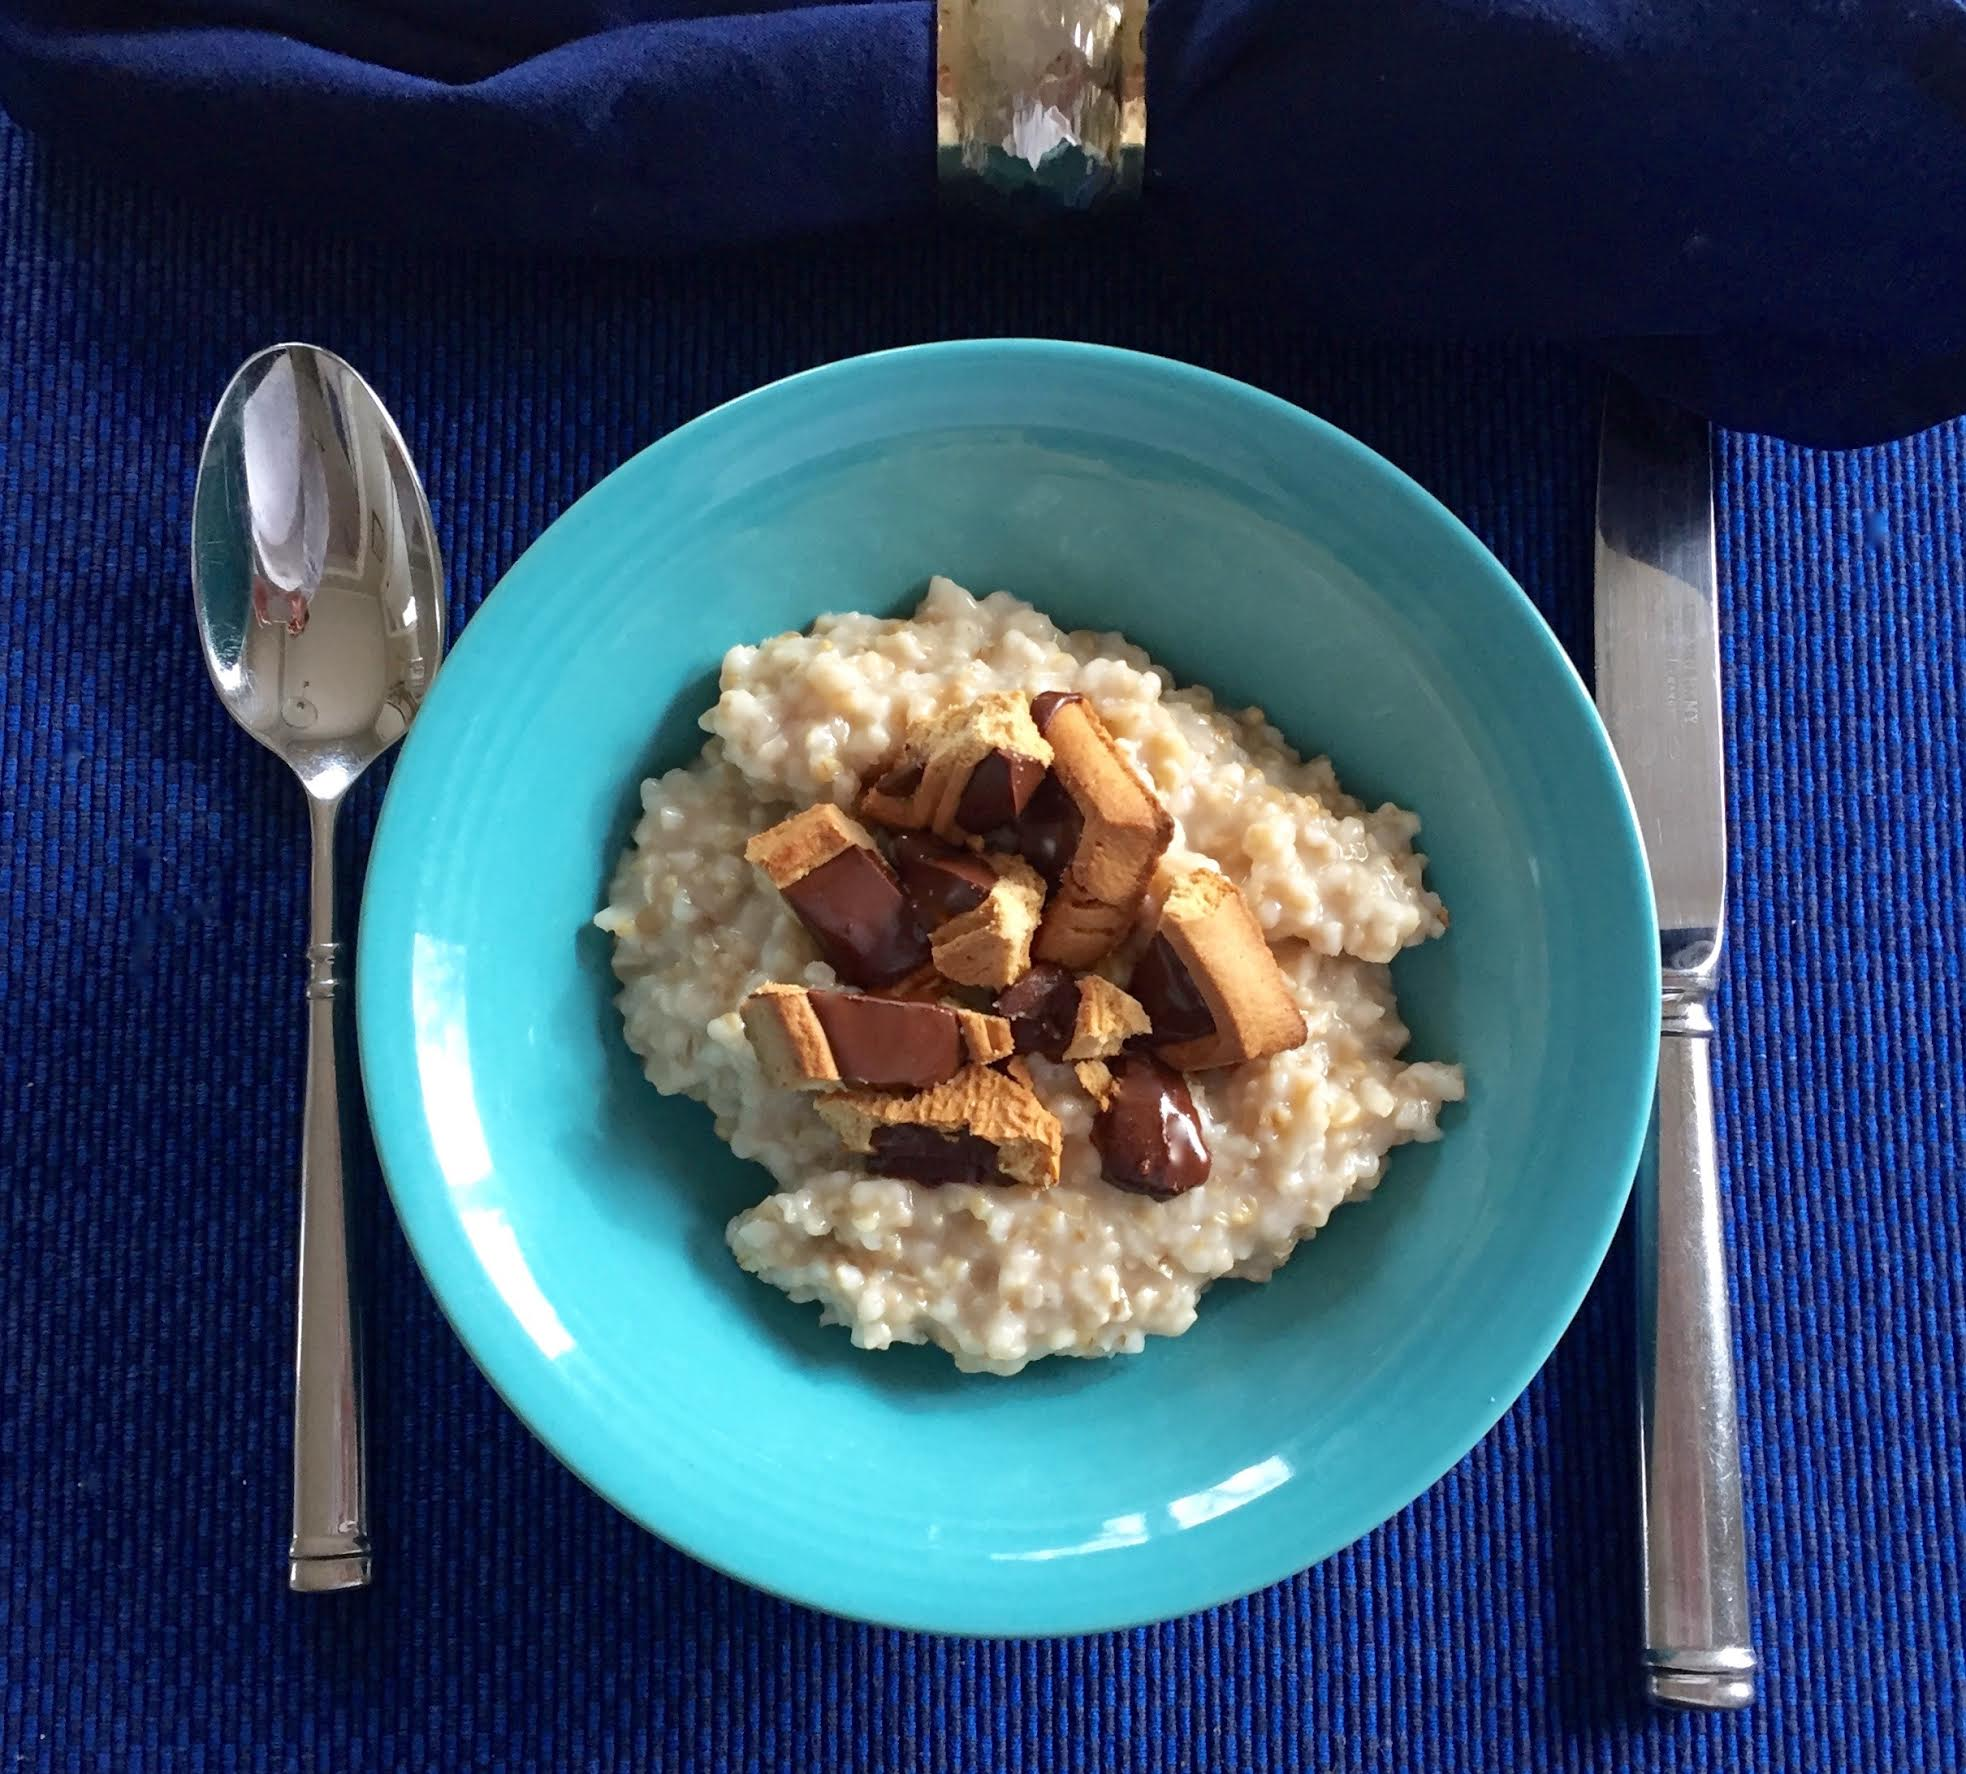 Decadent Oatmeal with Michel et Augustin Cookie Squares